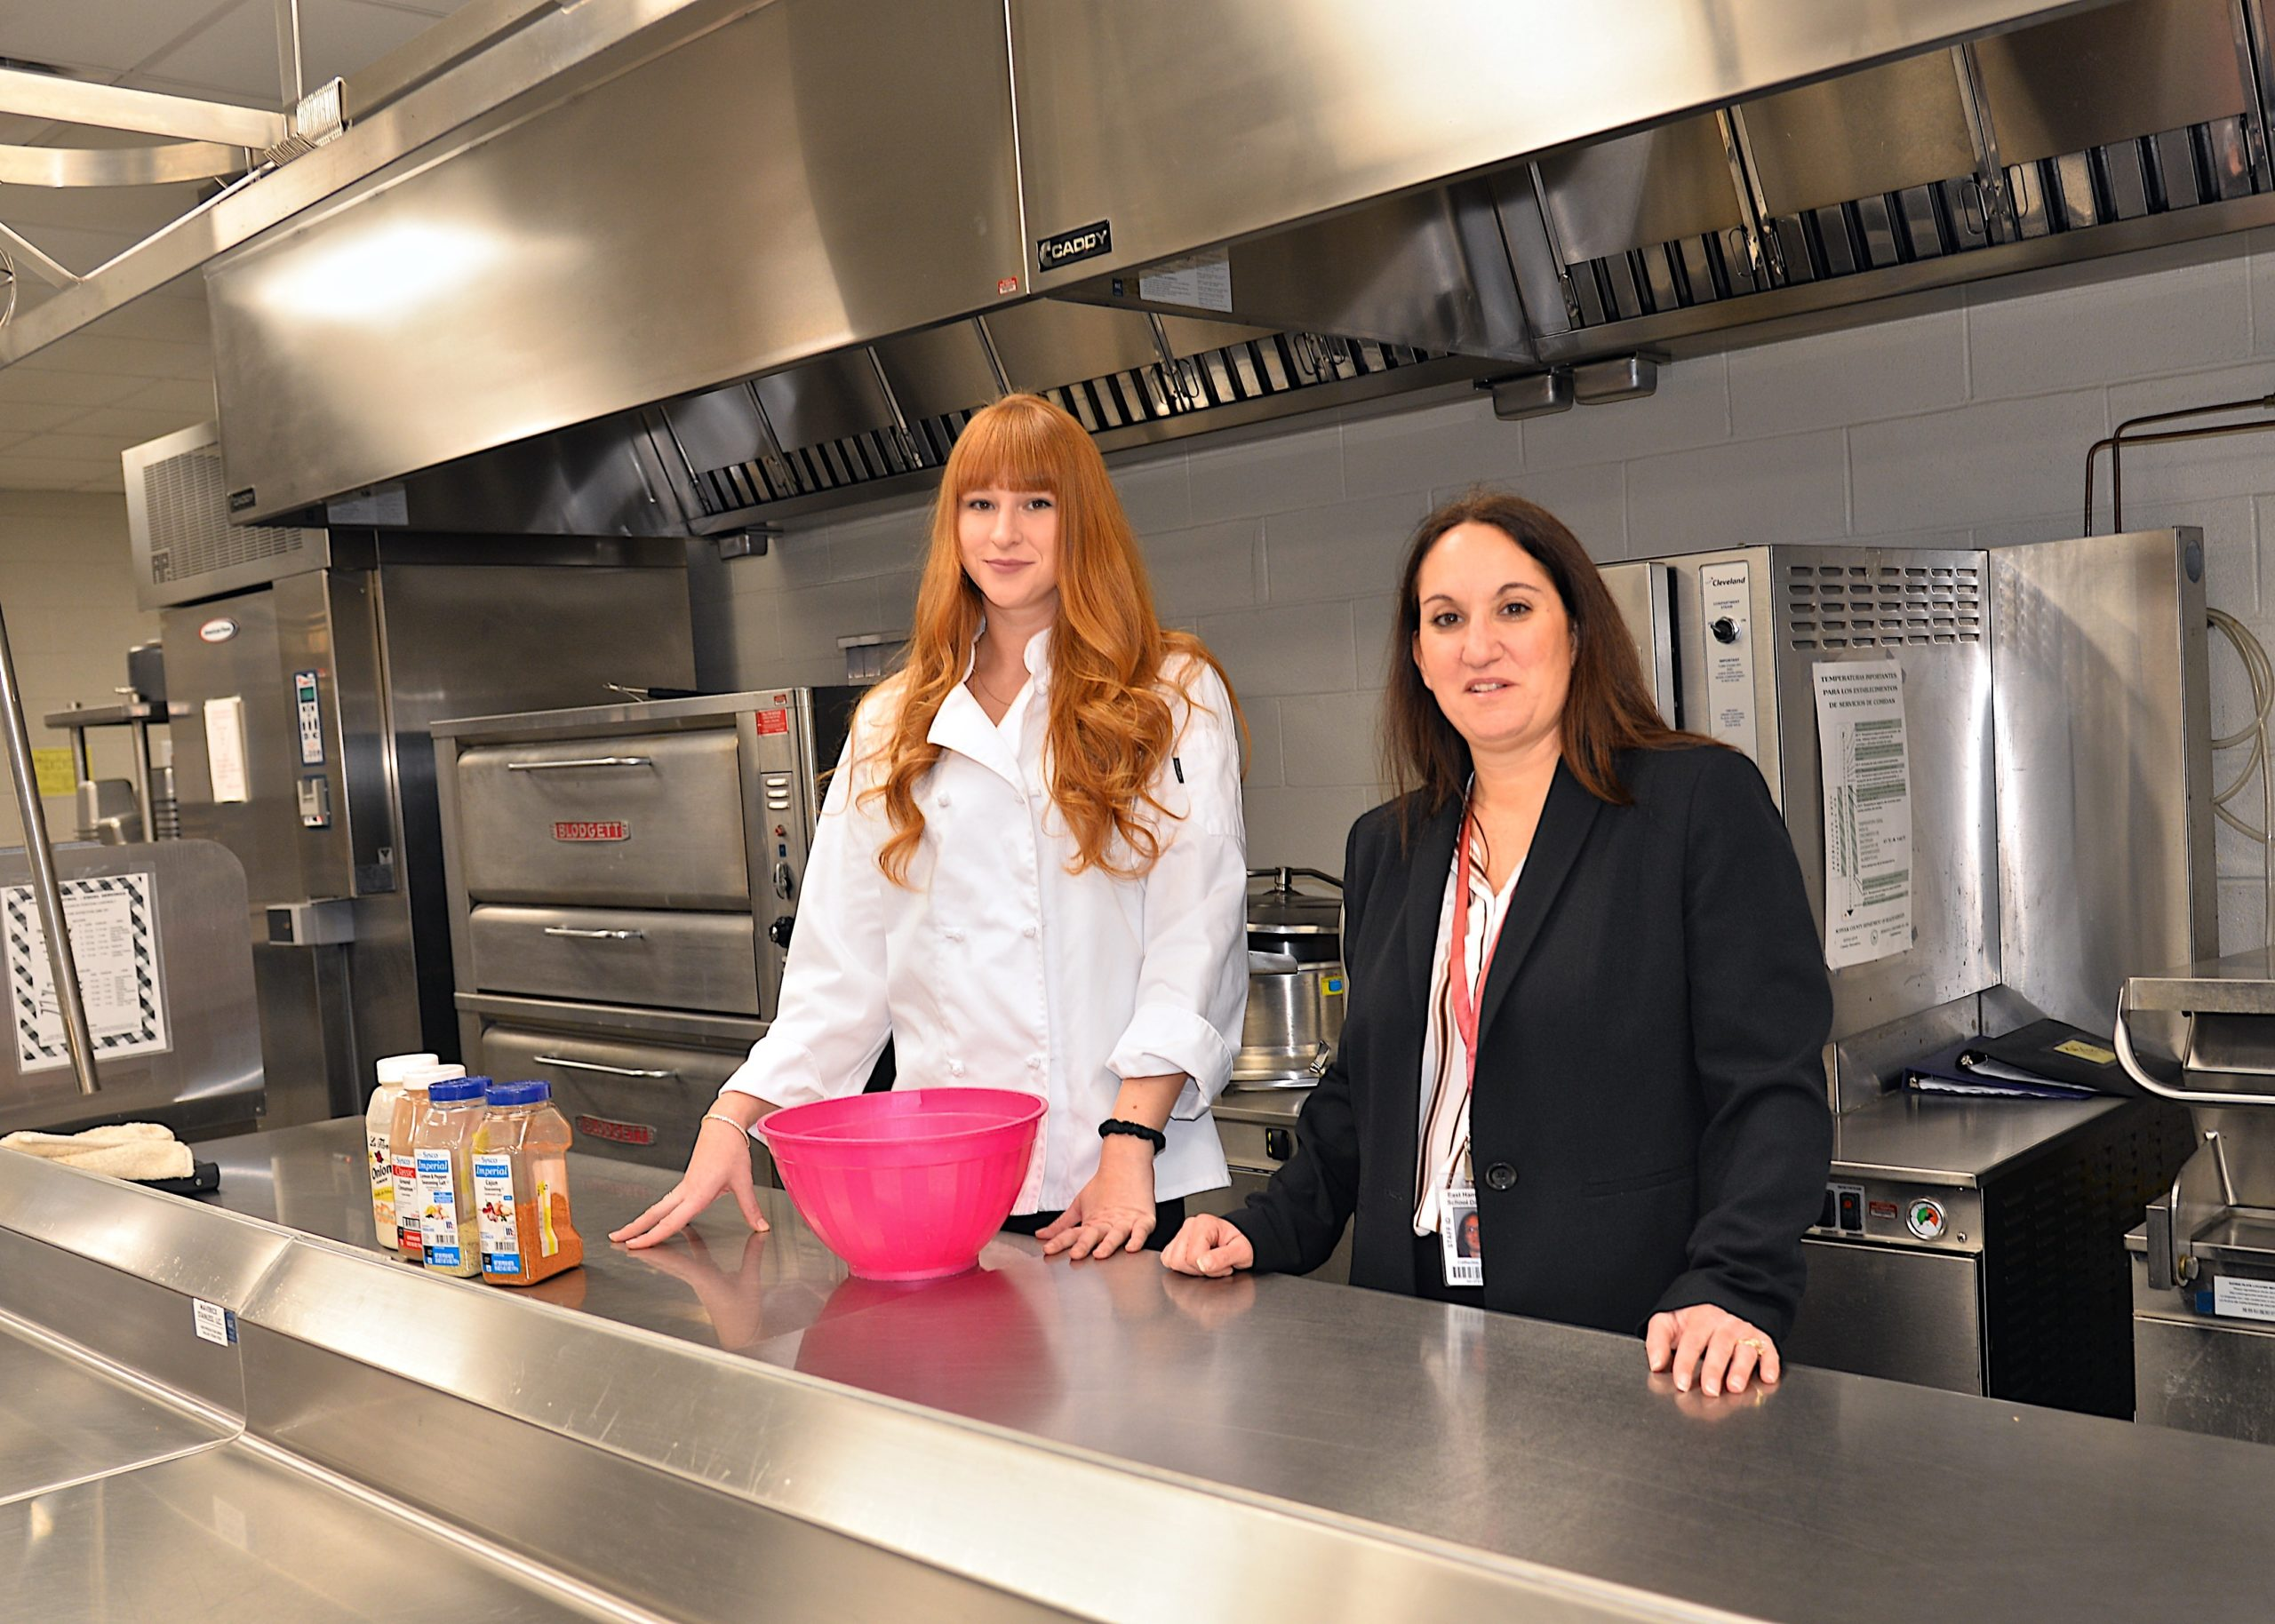 East Hampton culinary arts teacher Kelly Doyle, left, and business teacher and Career and Technical Education coordinator Catherine Tyrie in the East Hampton High School cafeteria kitchen. Kyril Bromley